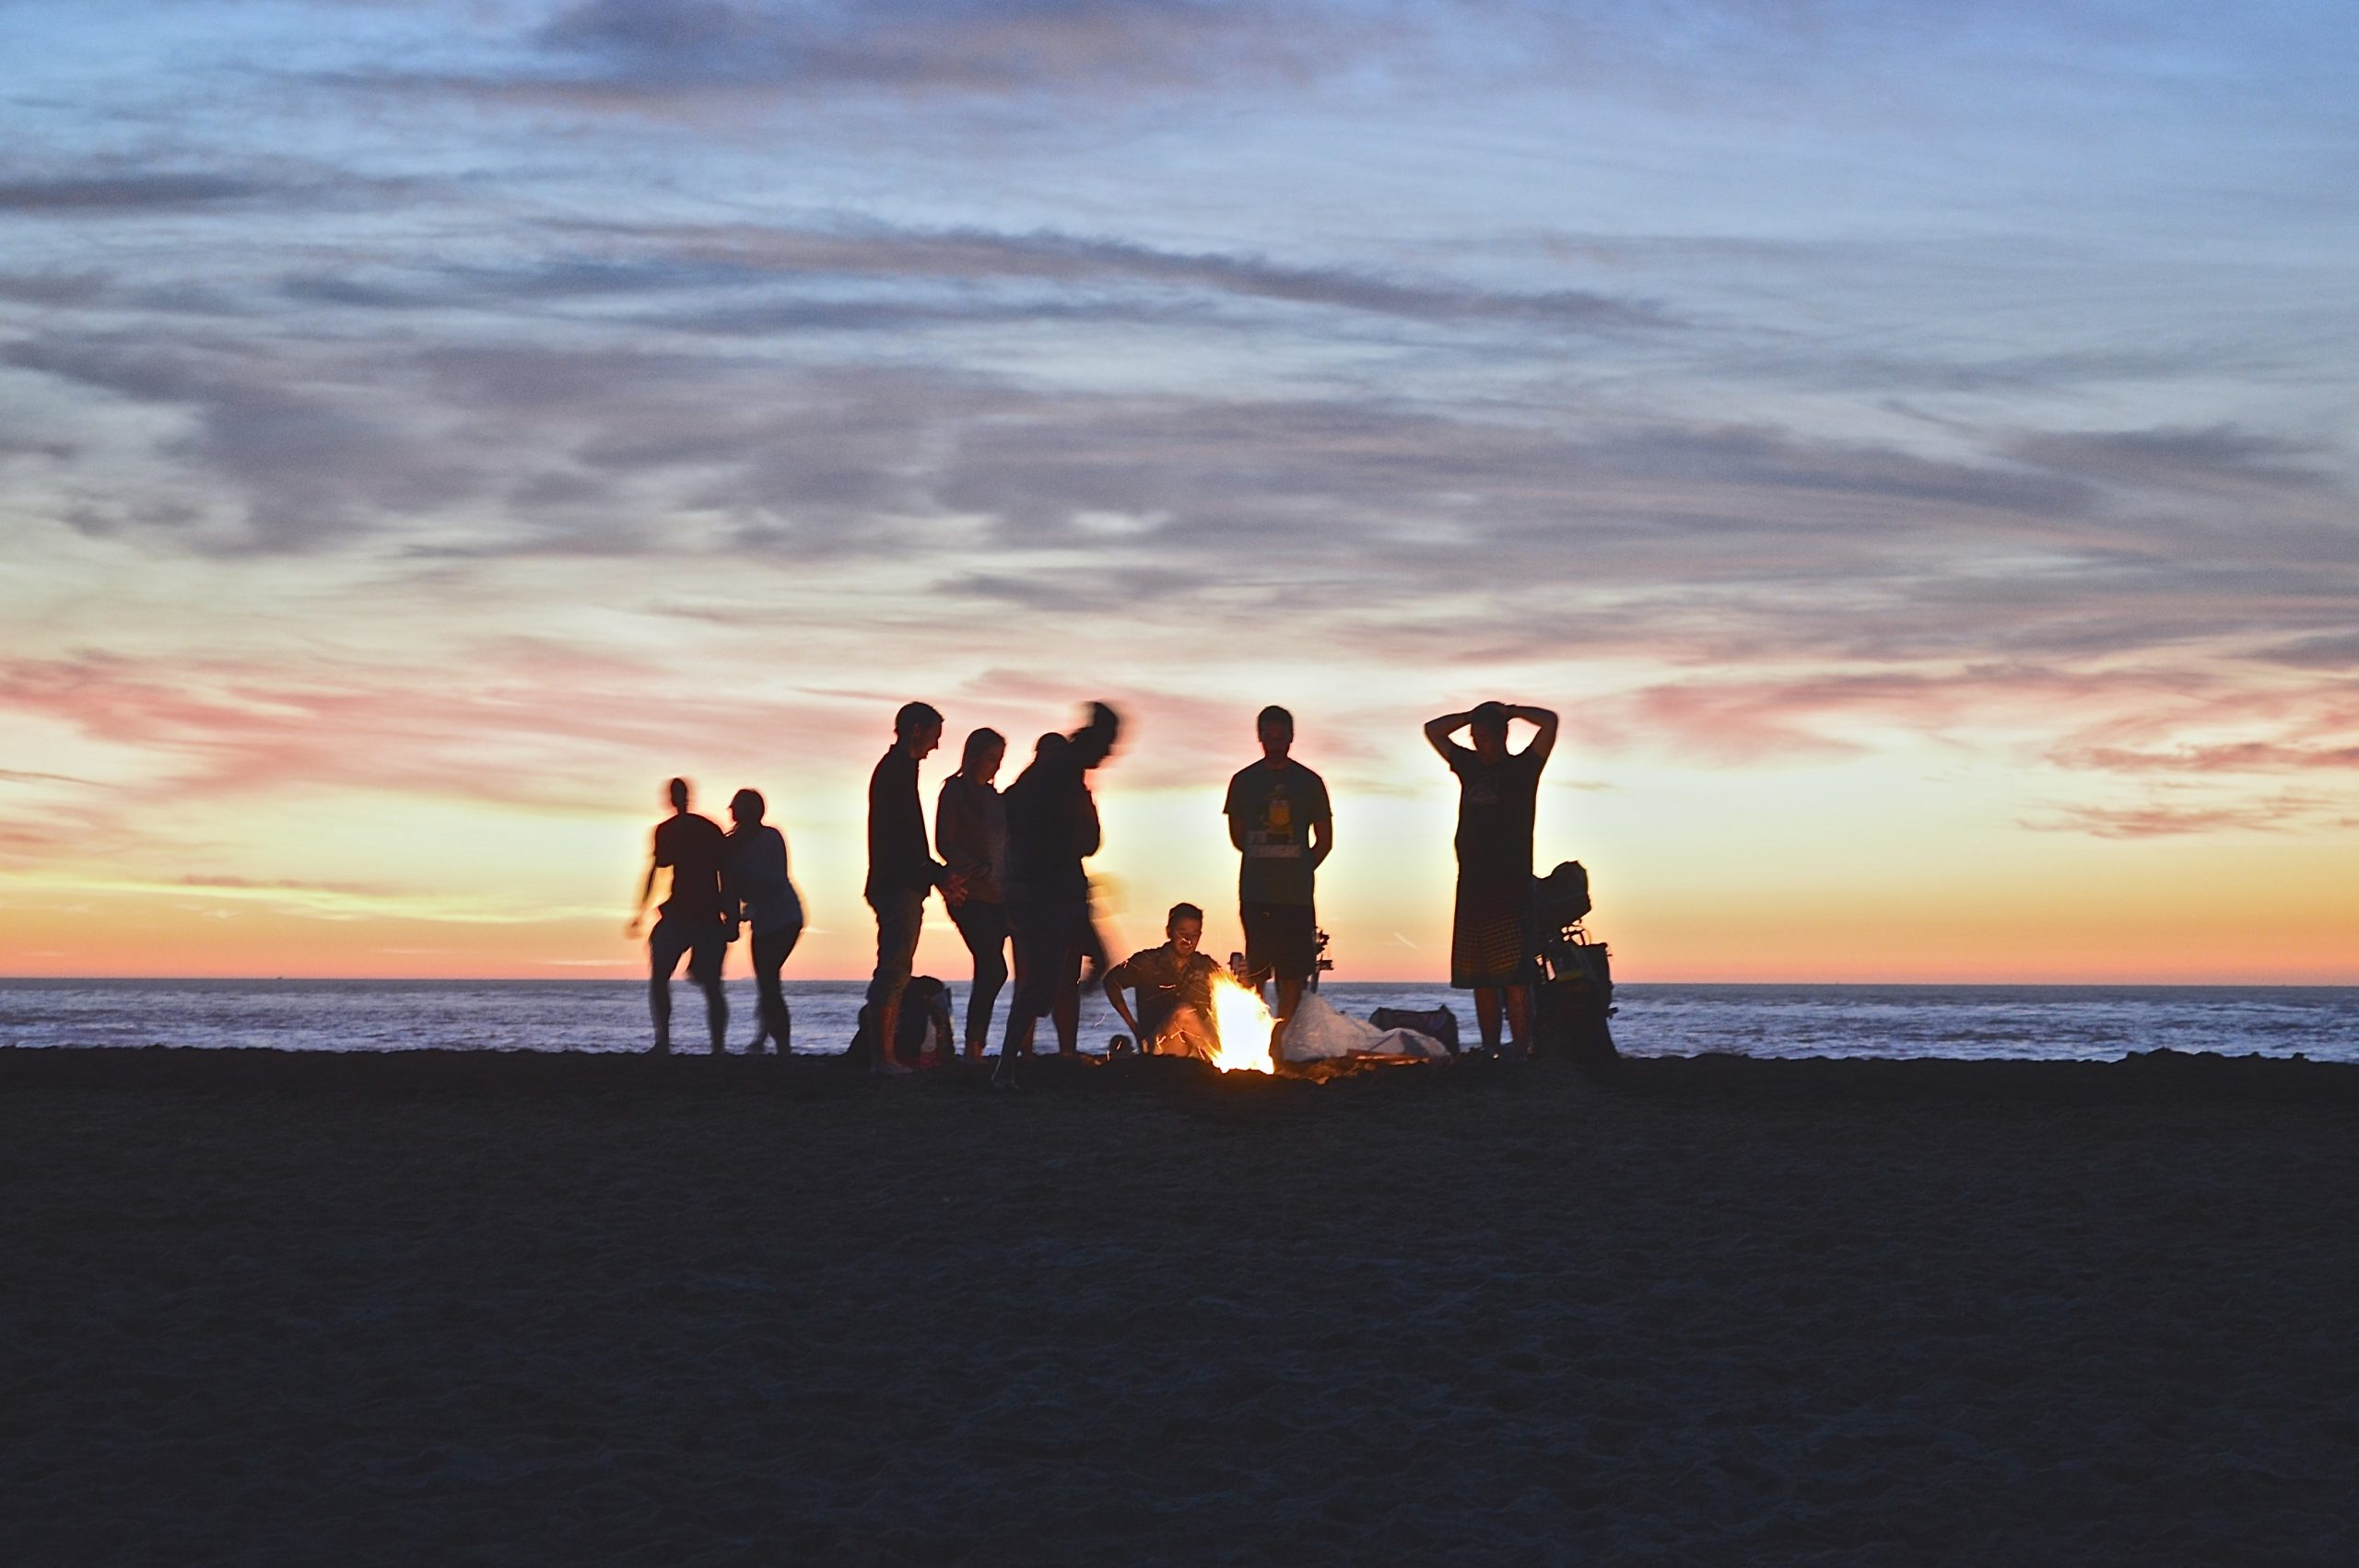 group of young people on the beach gathered around a bonfire at dusk